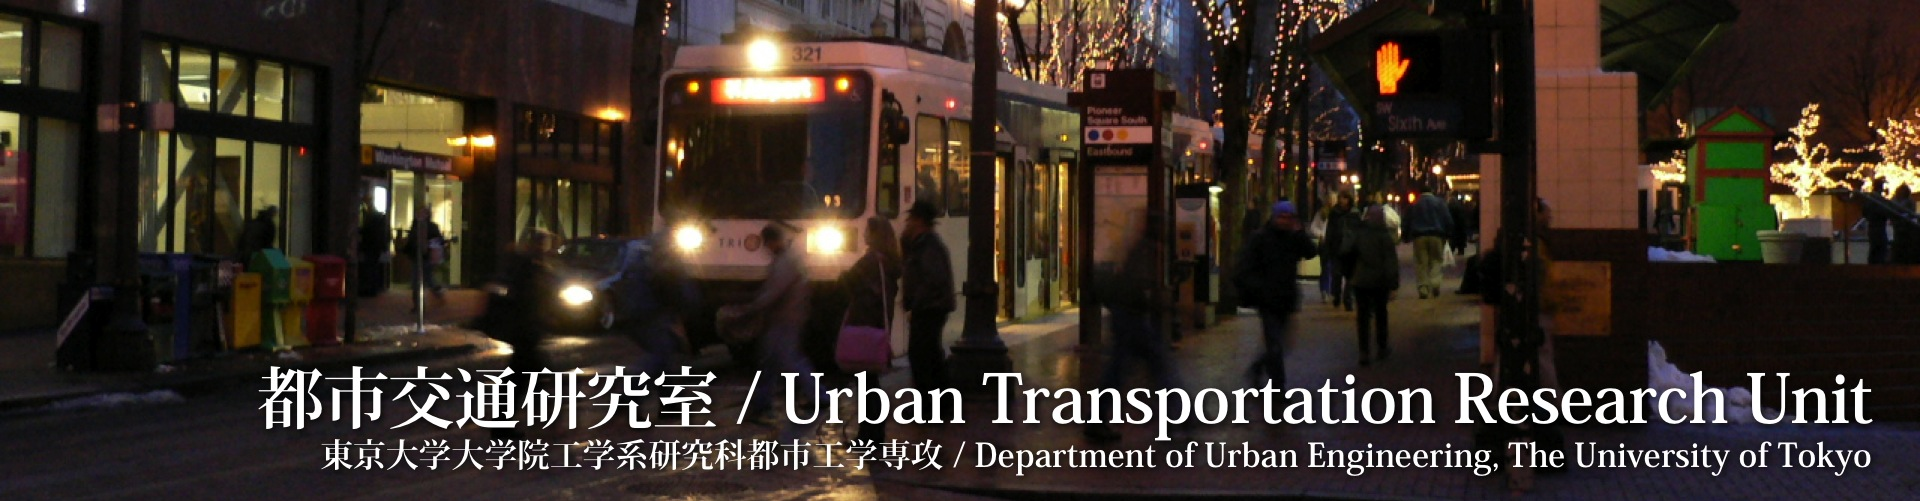 東京大学都市交通研究室 / Urban Transportation Research Unit, UTokyo